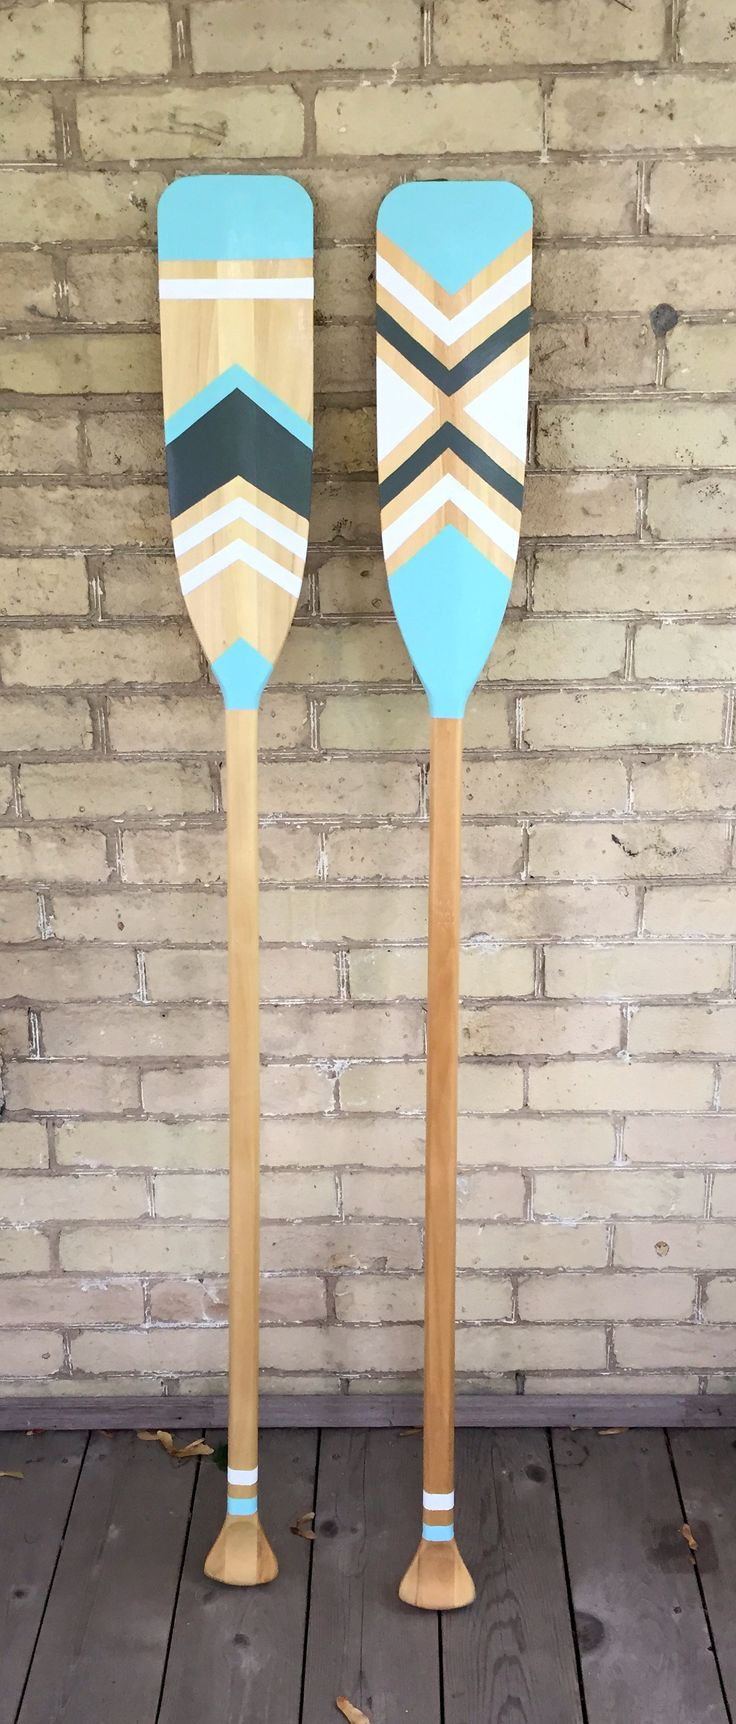 Newest Painted Paddles!